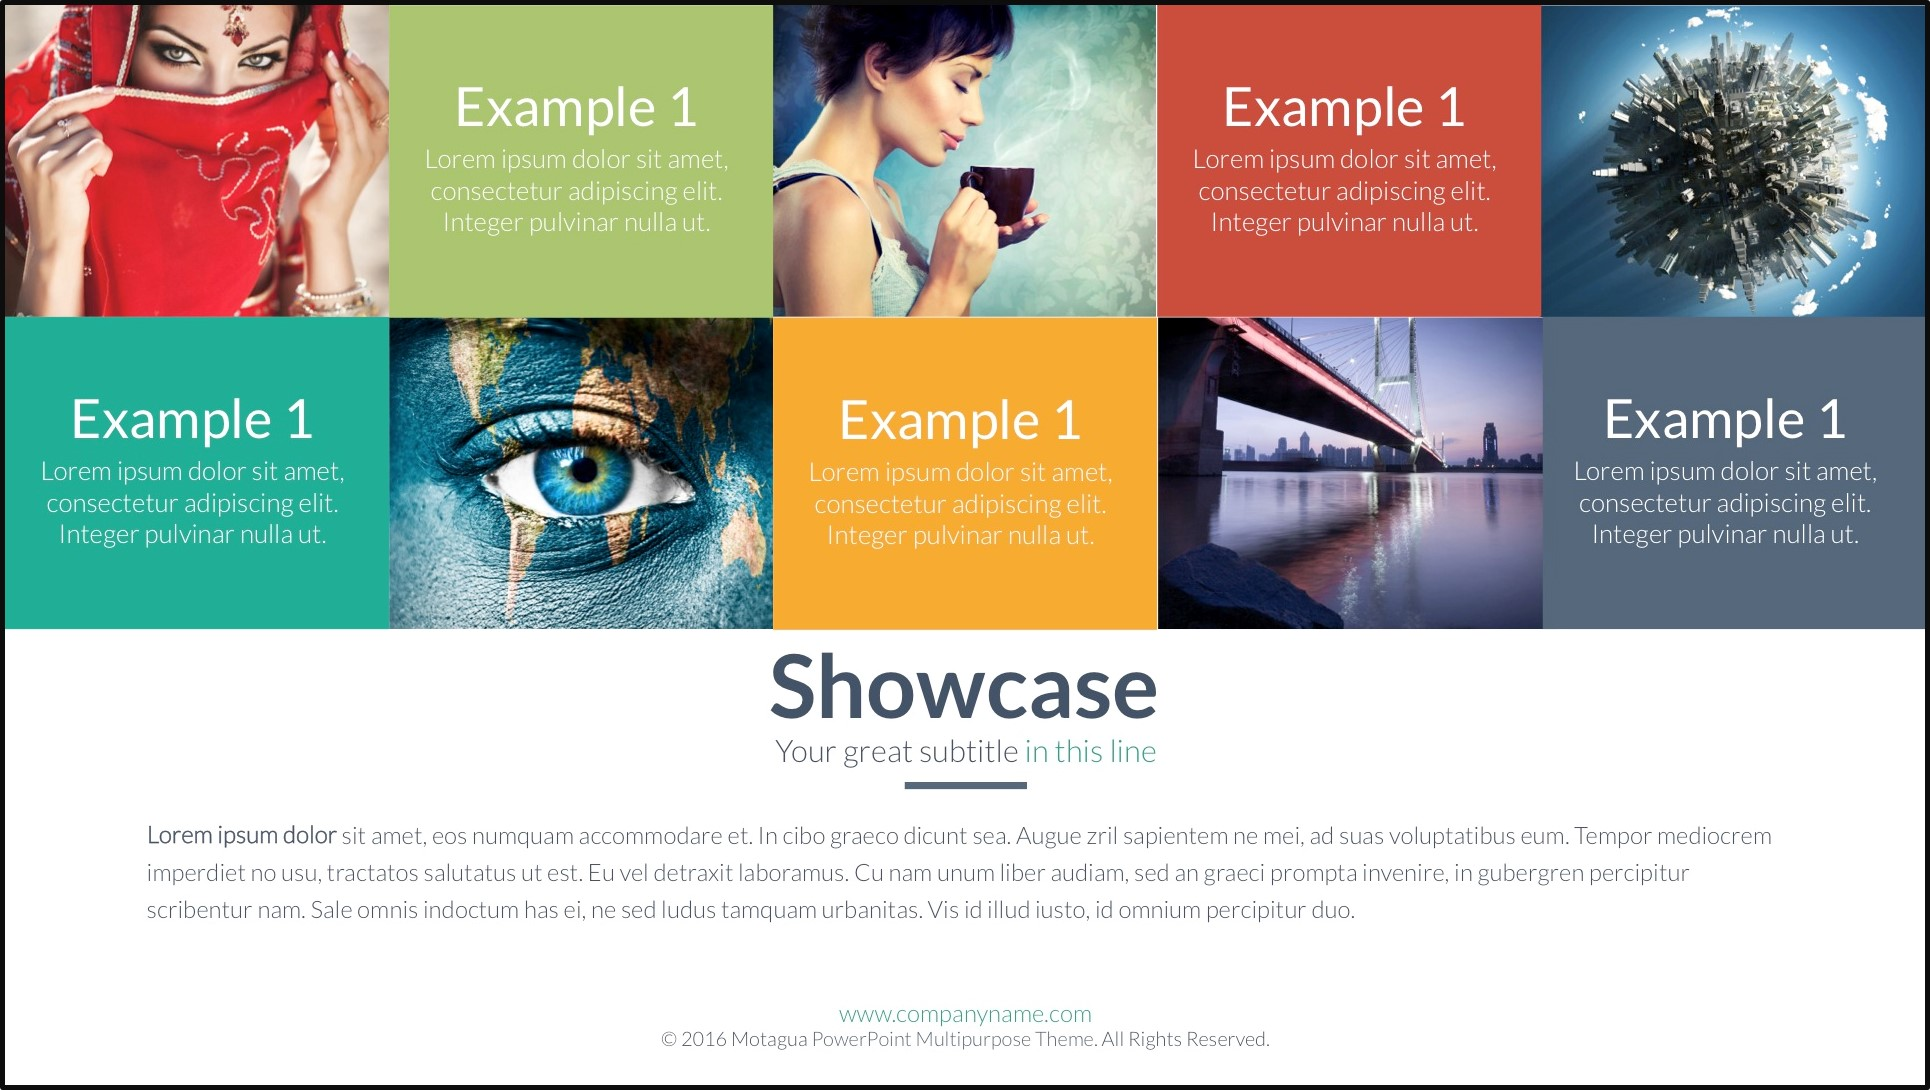 how to fix a boring powerpoint presentation - use a structured grid of images and shapes